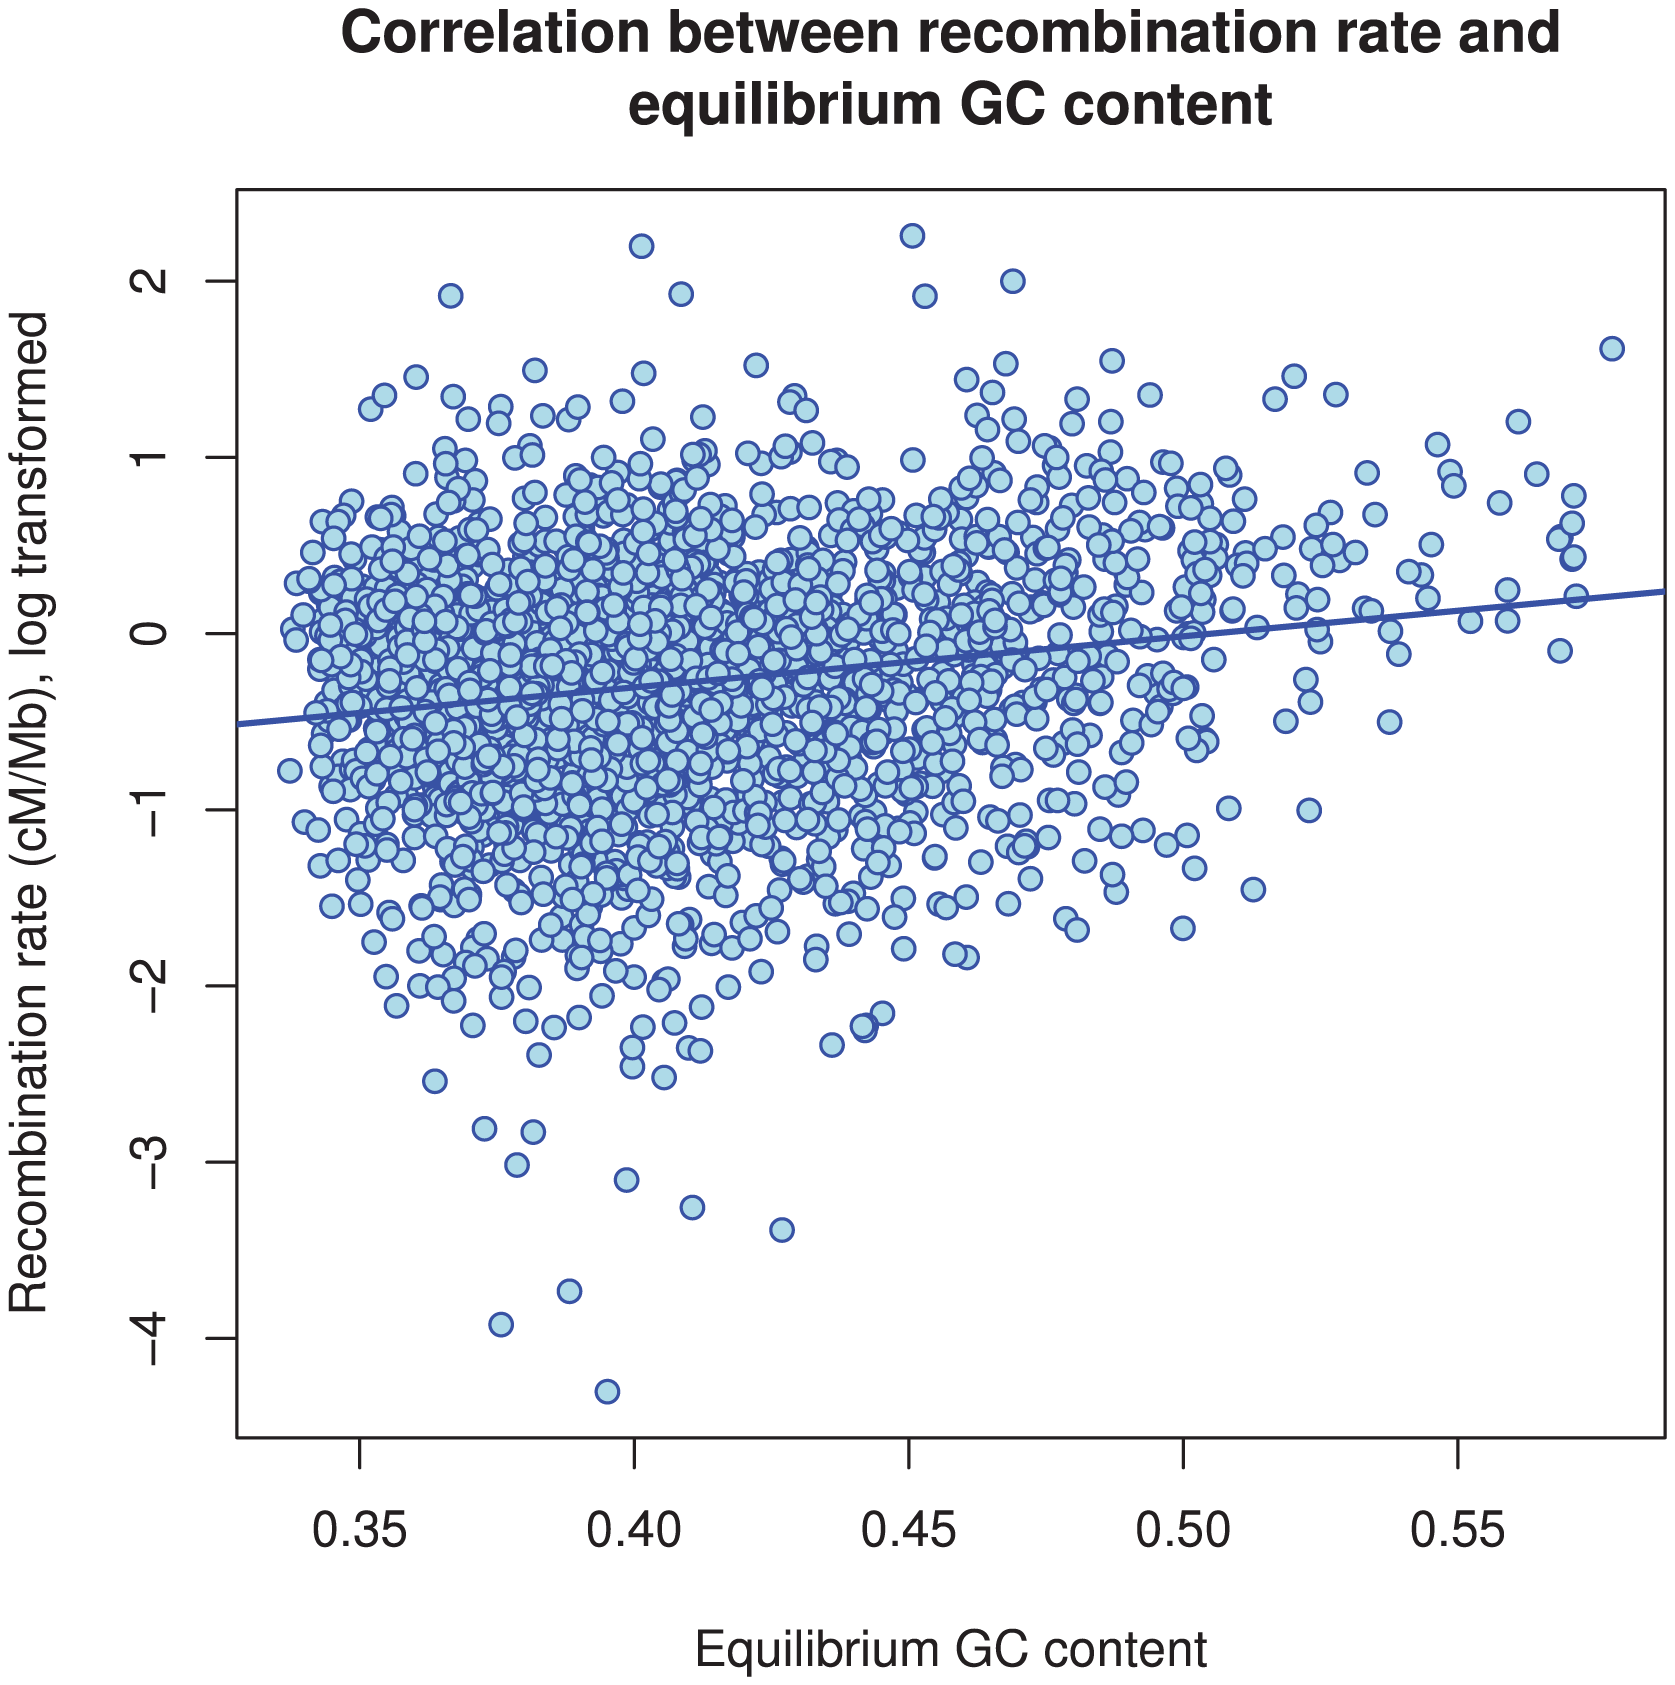 The correlation between GC content and inferred recombination rate.